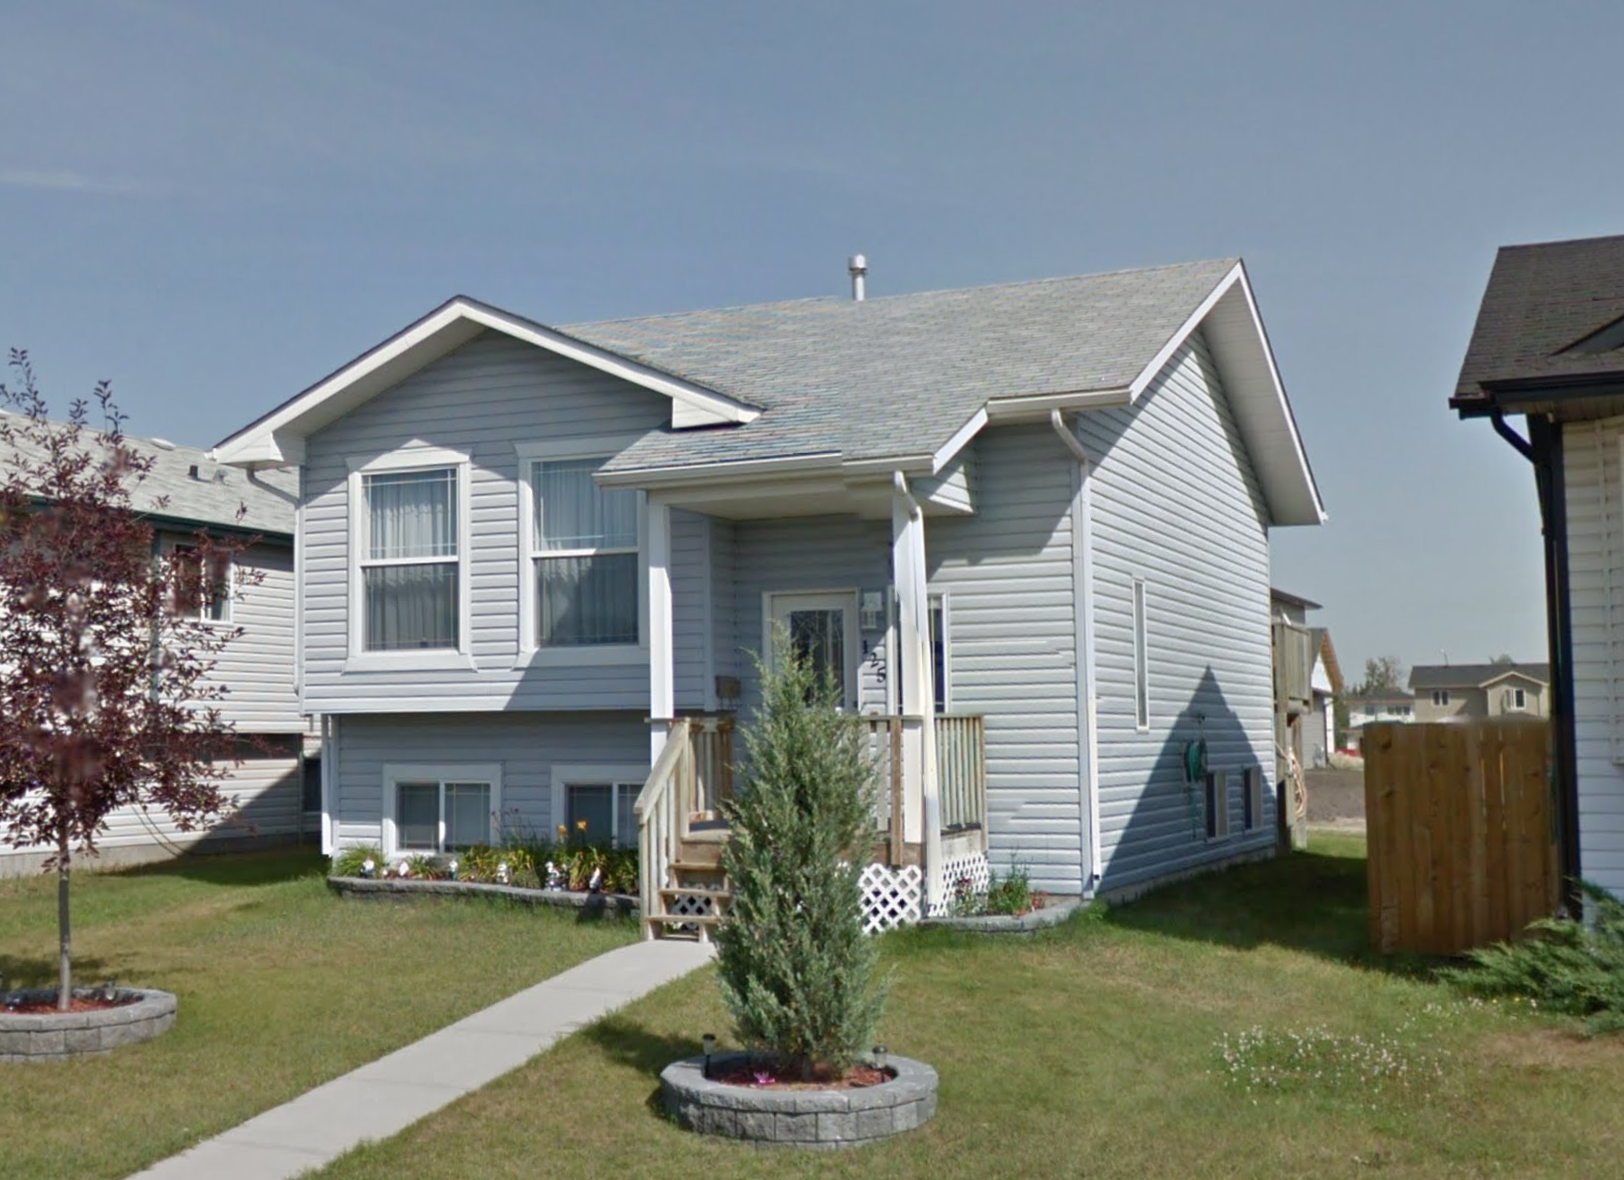 blackfalds alberta foreclosure for sale 254 900